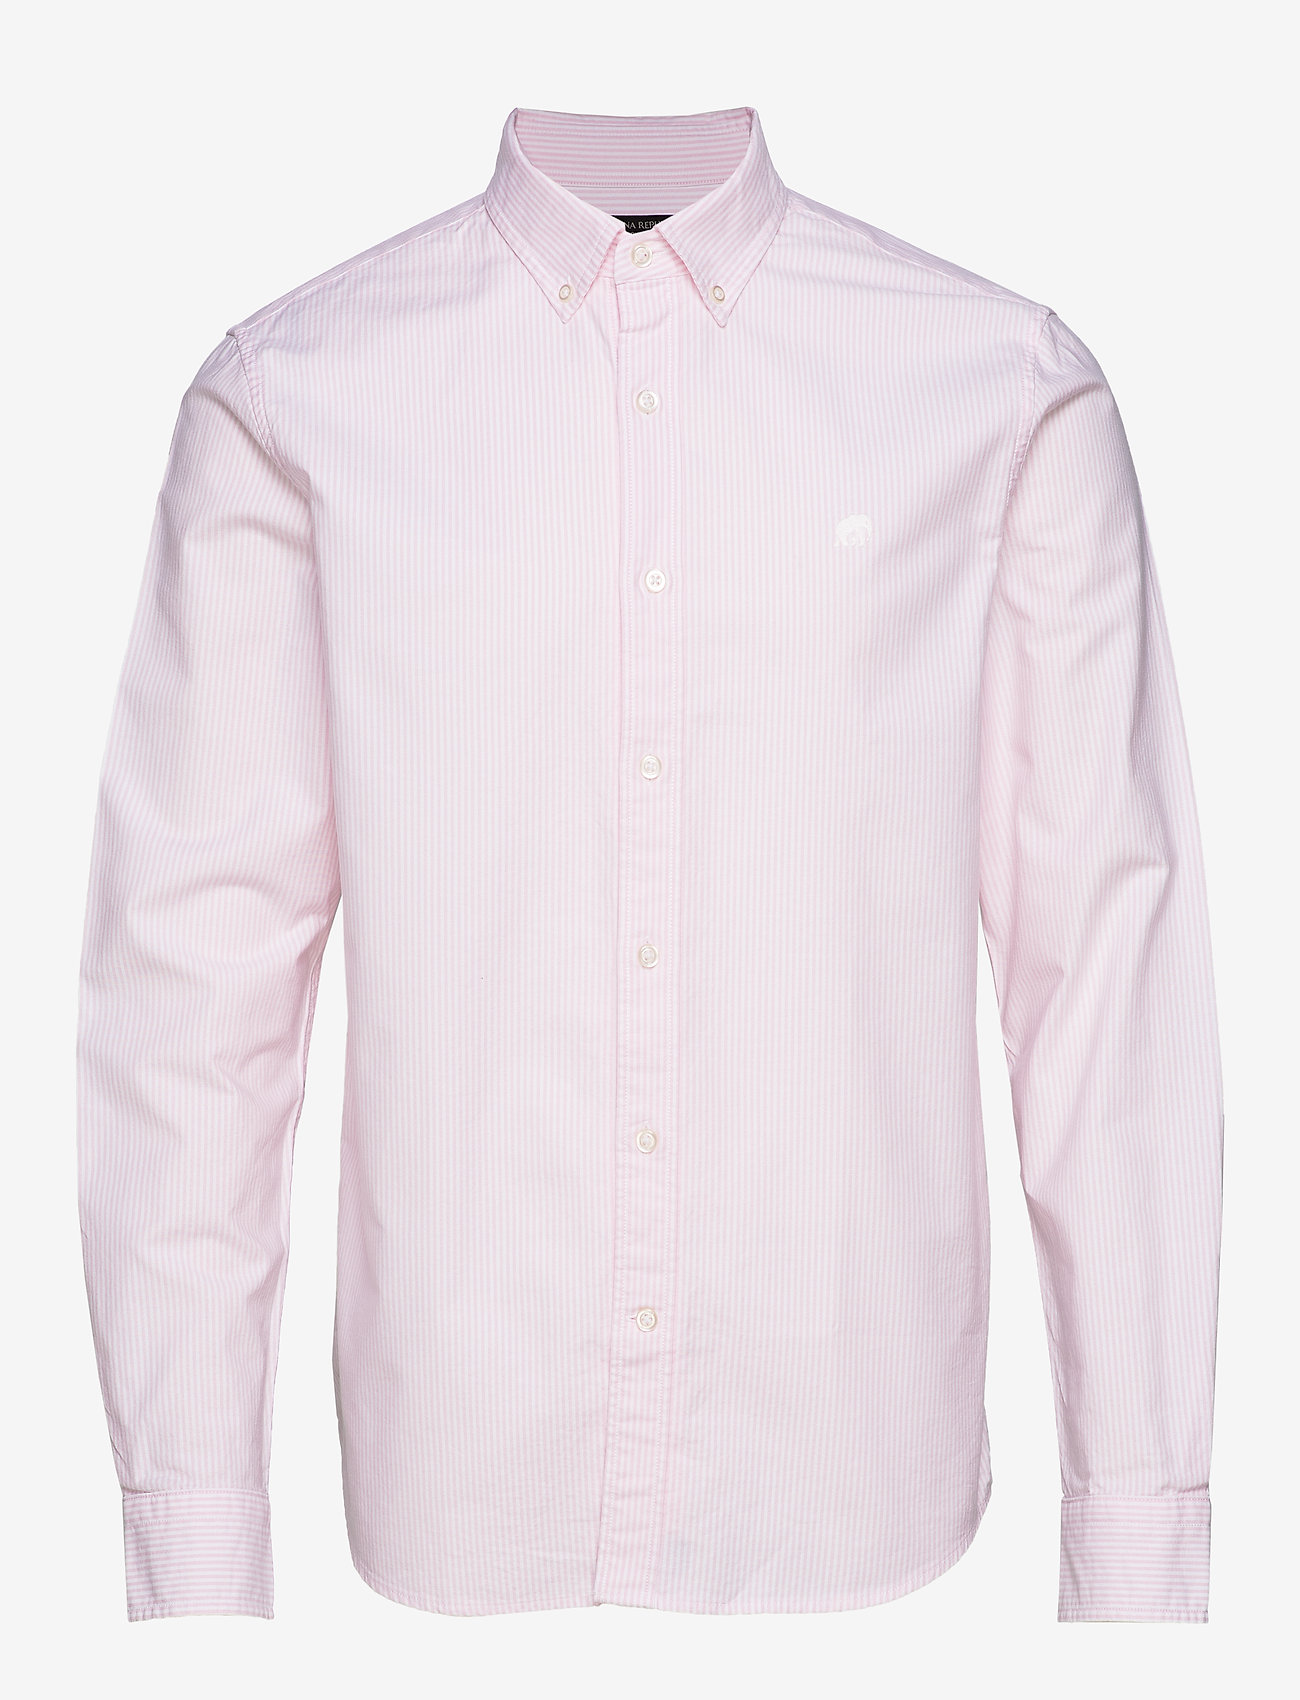 Banana Republic - I UT LOGO OXFORD STRIPE - oxford shirts - pink mist - 0